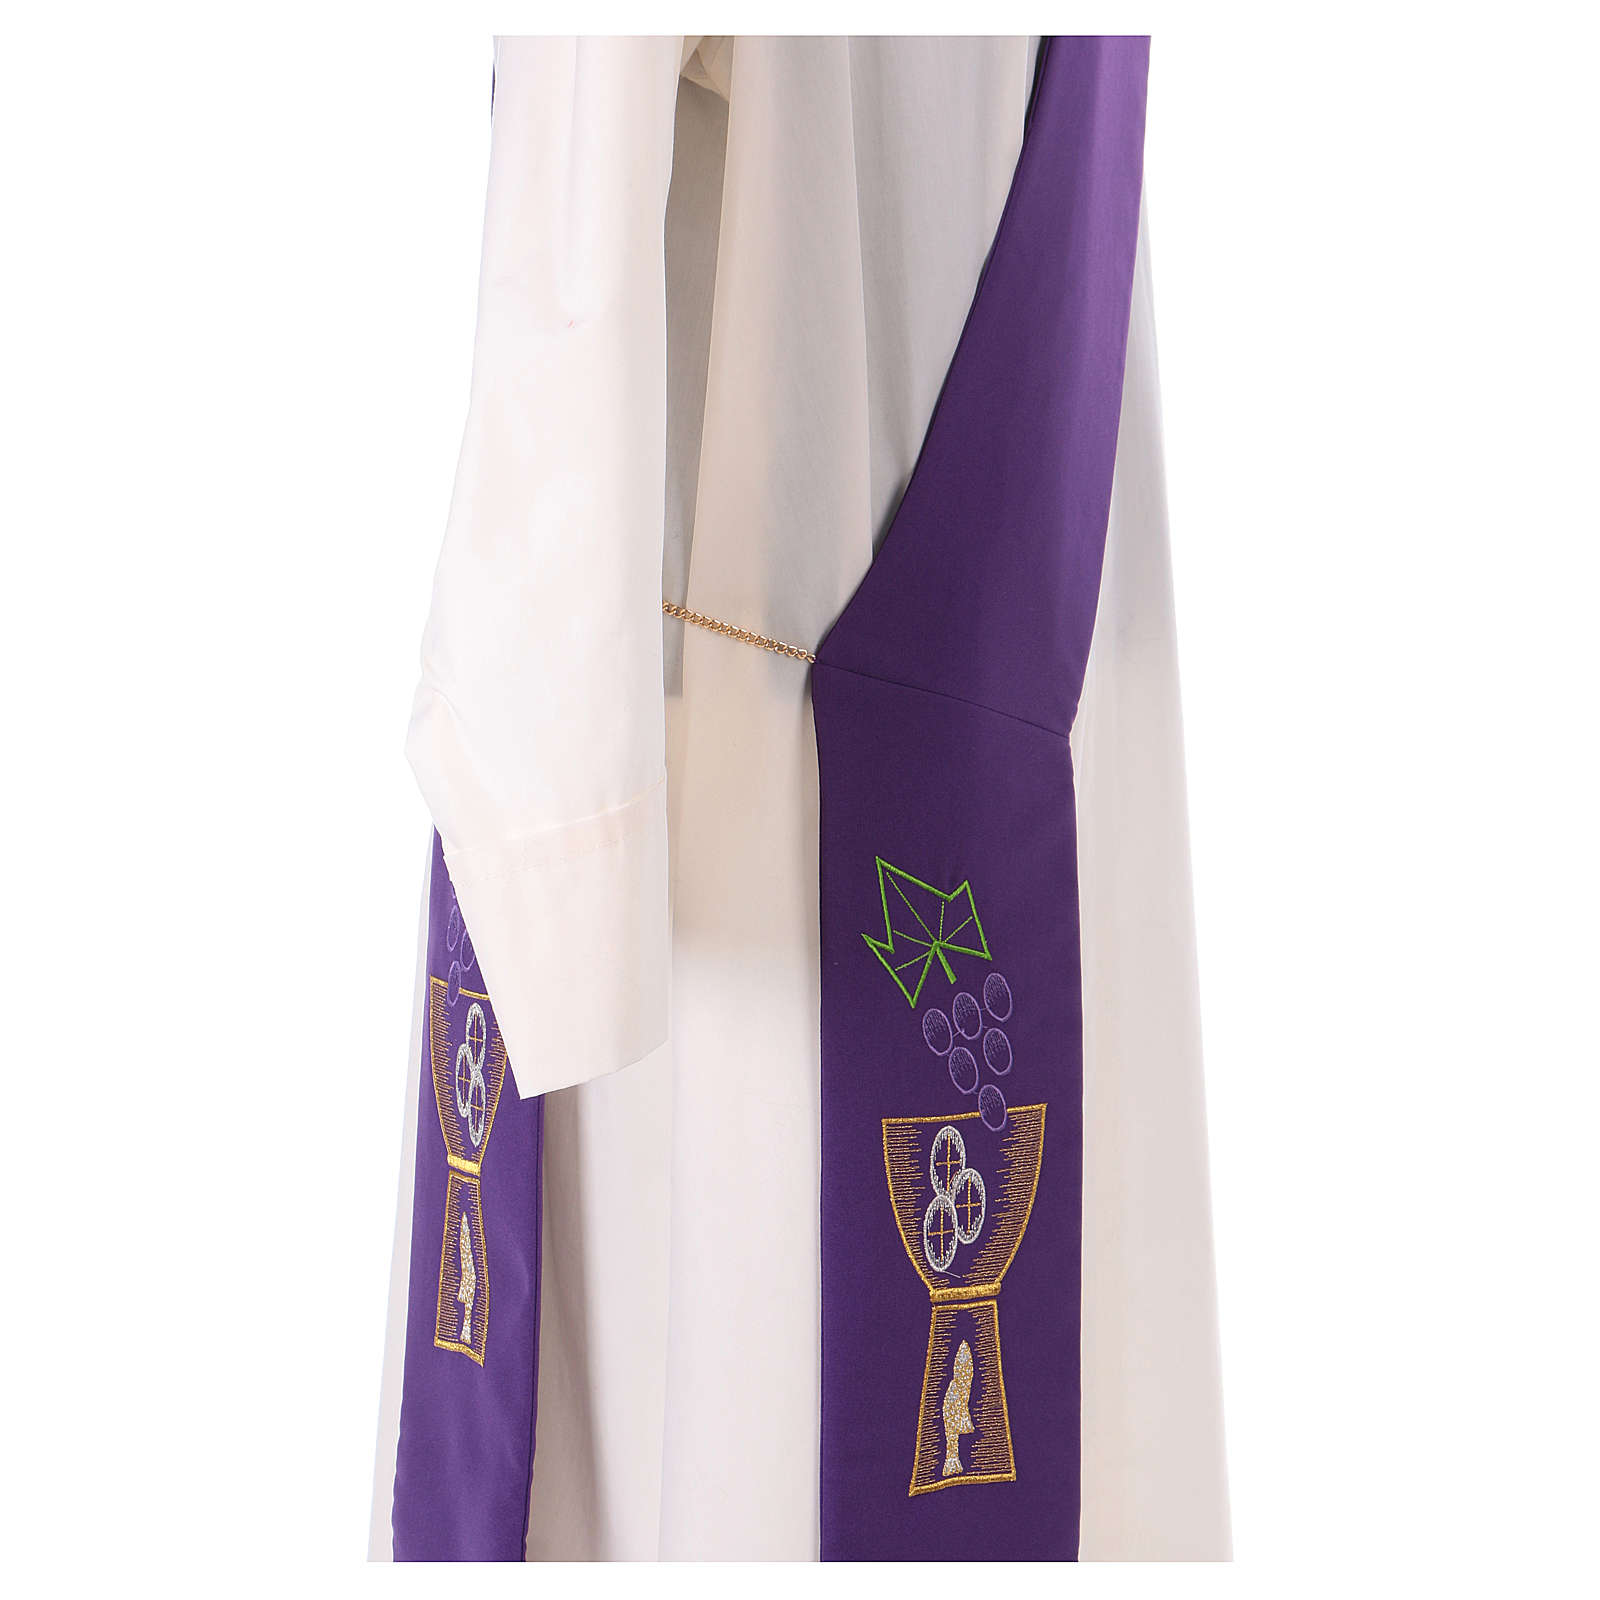 Diaconal stole in polyester with chalice and grapes embroidery 4